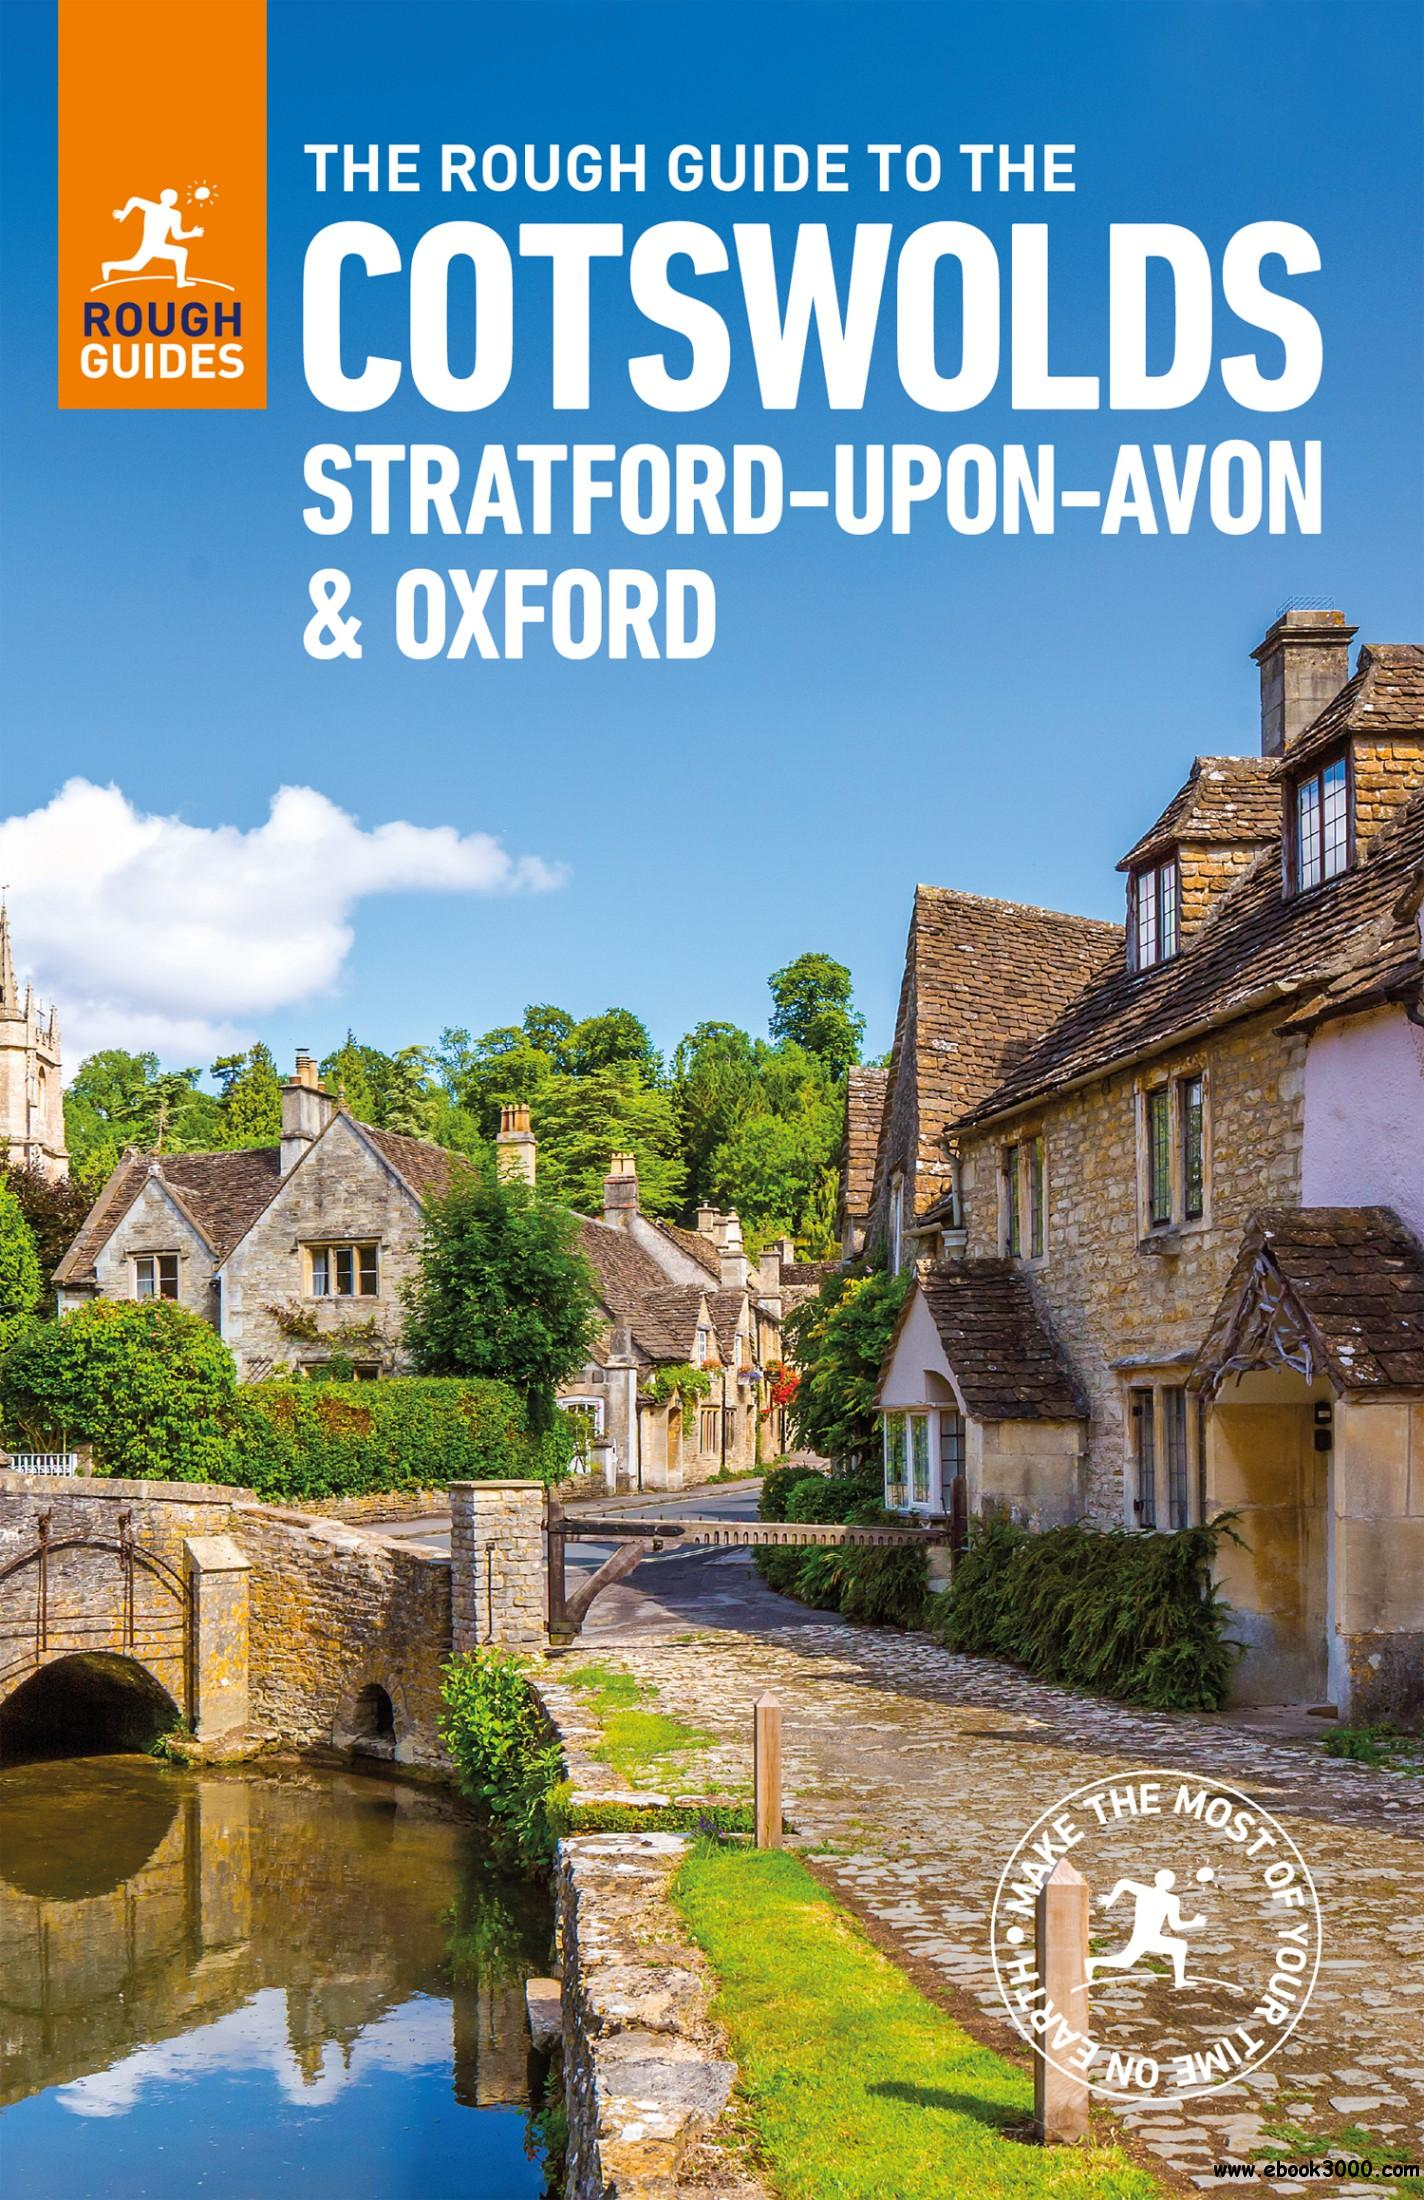 The Rough Guide to Cotswolds, Stratford-upon-Avon and Oxford (Rough Guides), 3rd Edition